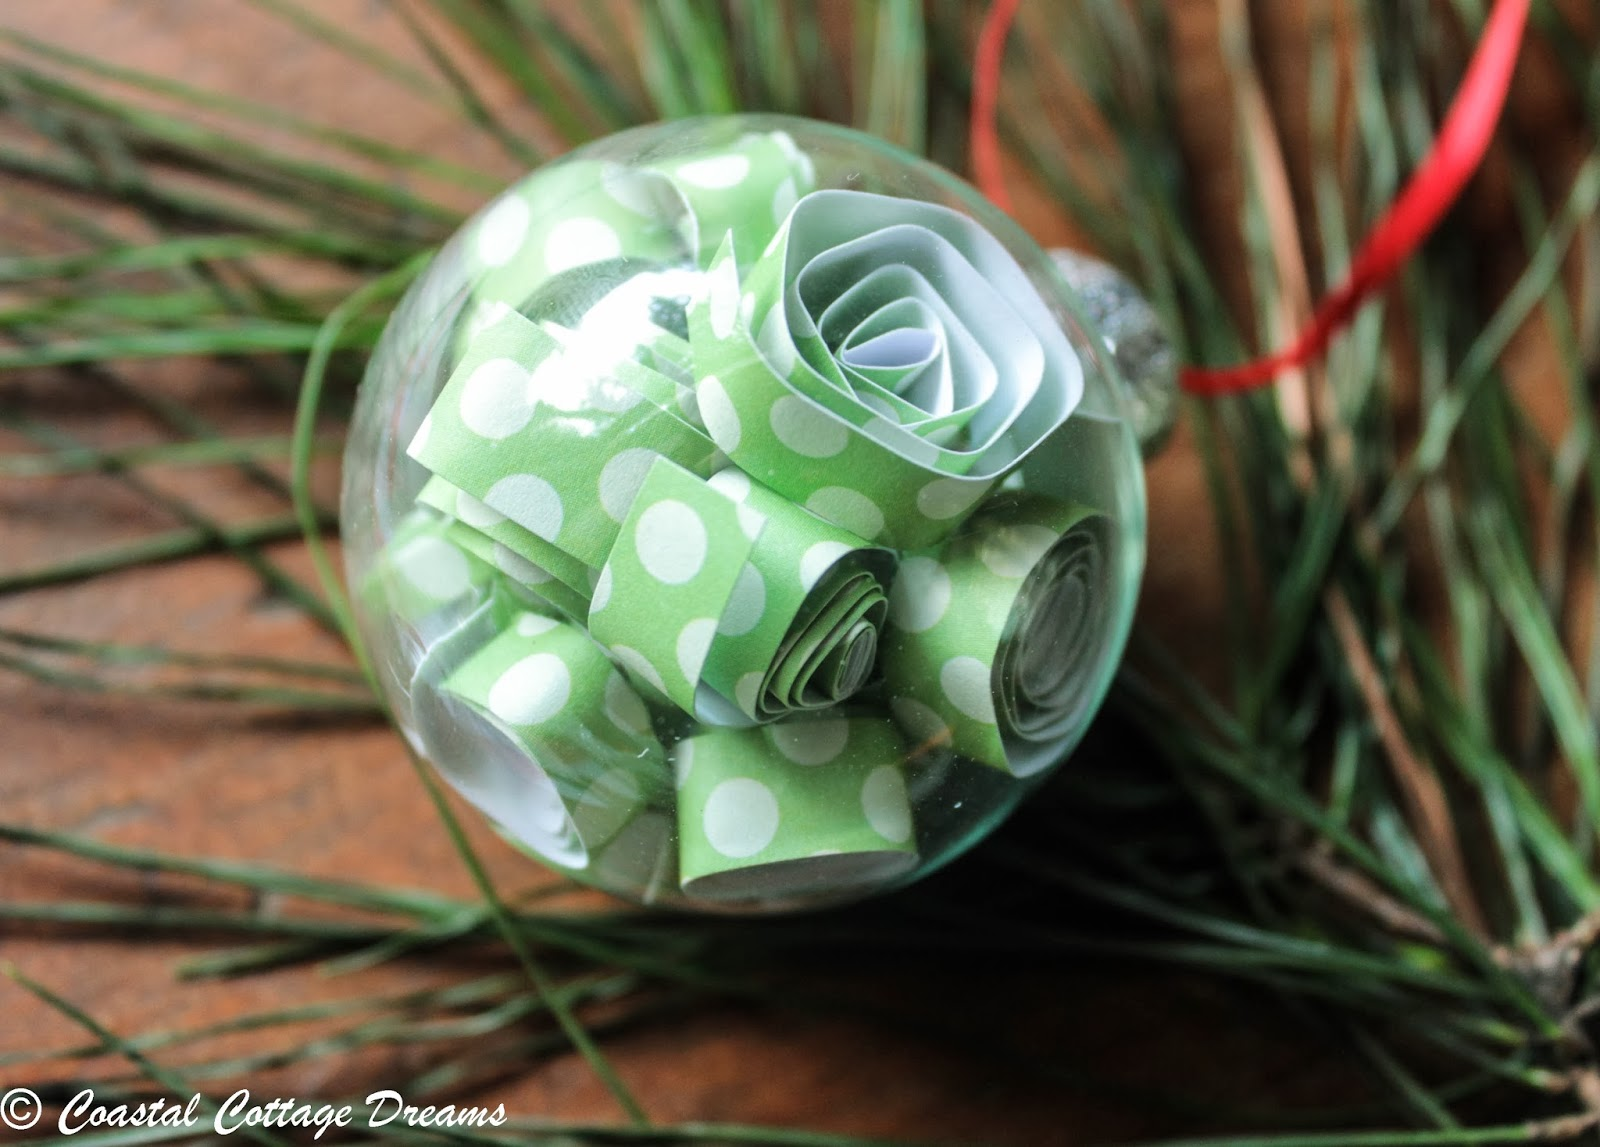 Glass craft ornaments - Well That Is My Little Craft For Glass Ornaments That I Wanted To Share With You Now I Better Get Busy In Making Some More Before I Get My Tree Up